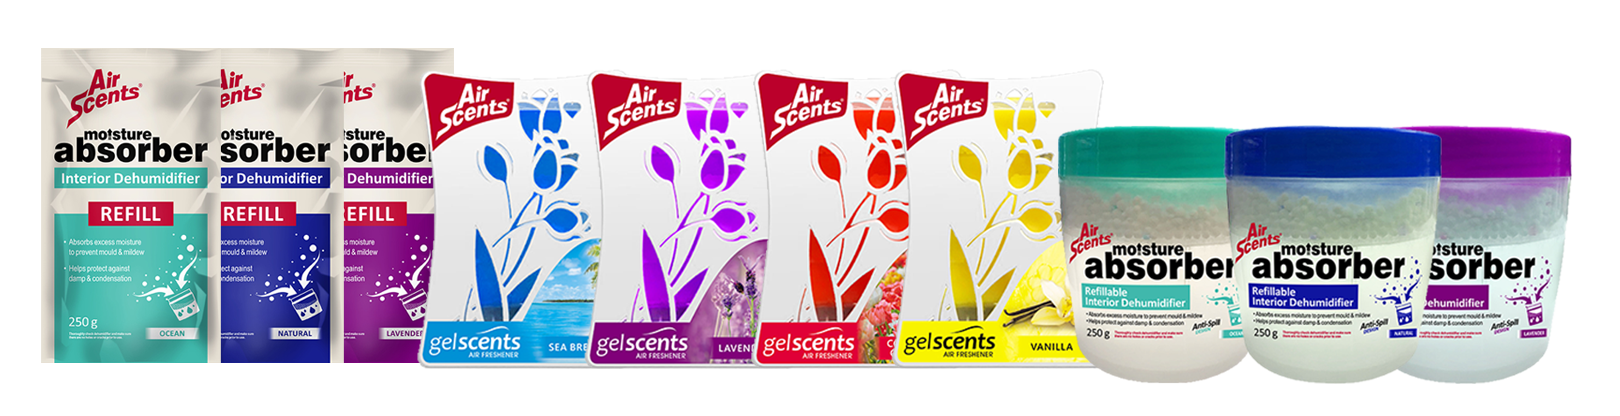 airscents-header-new-products